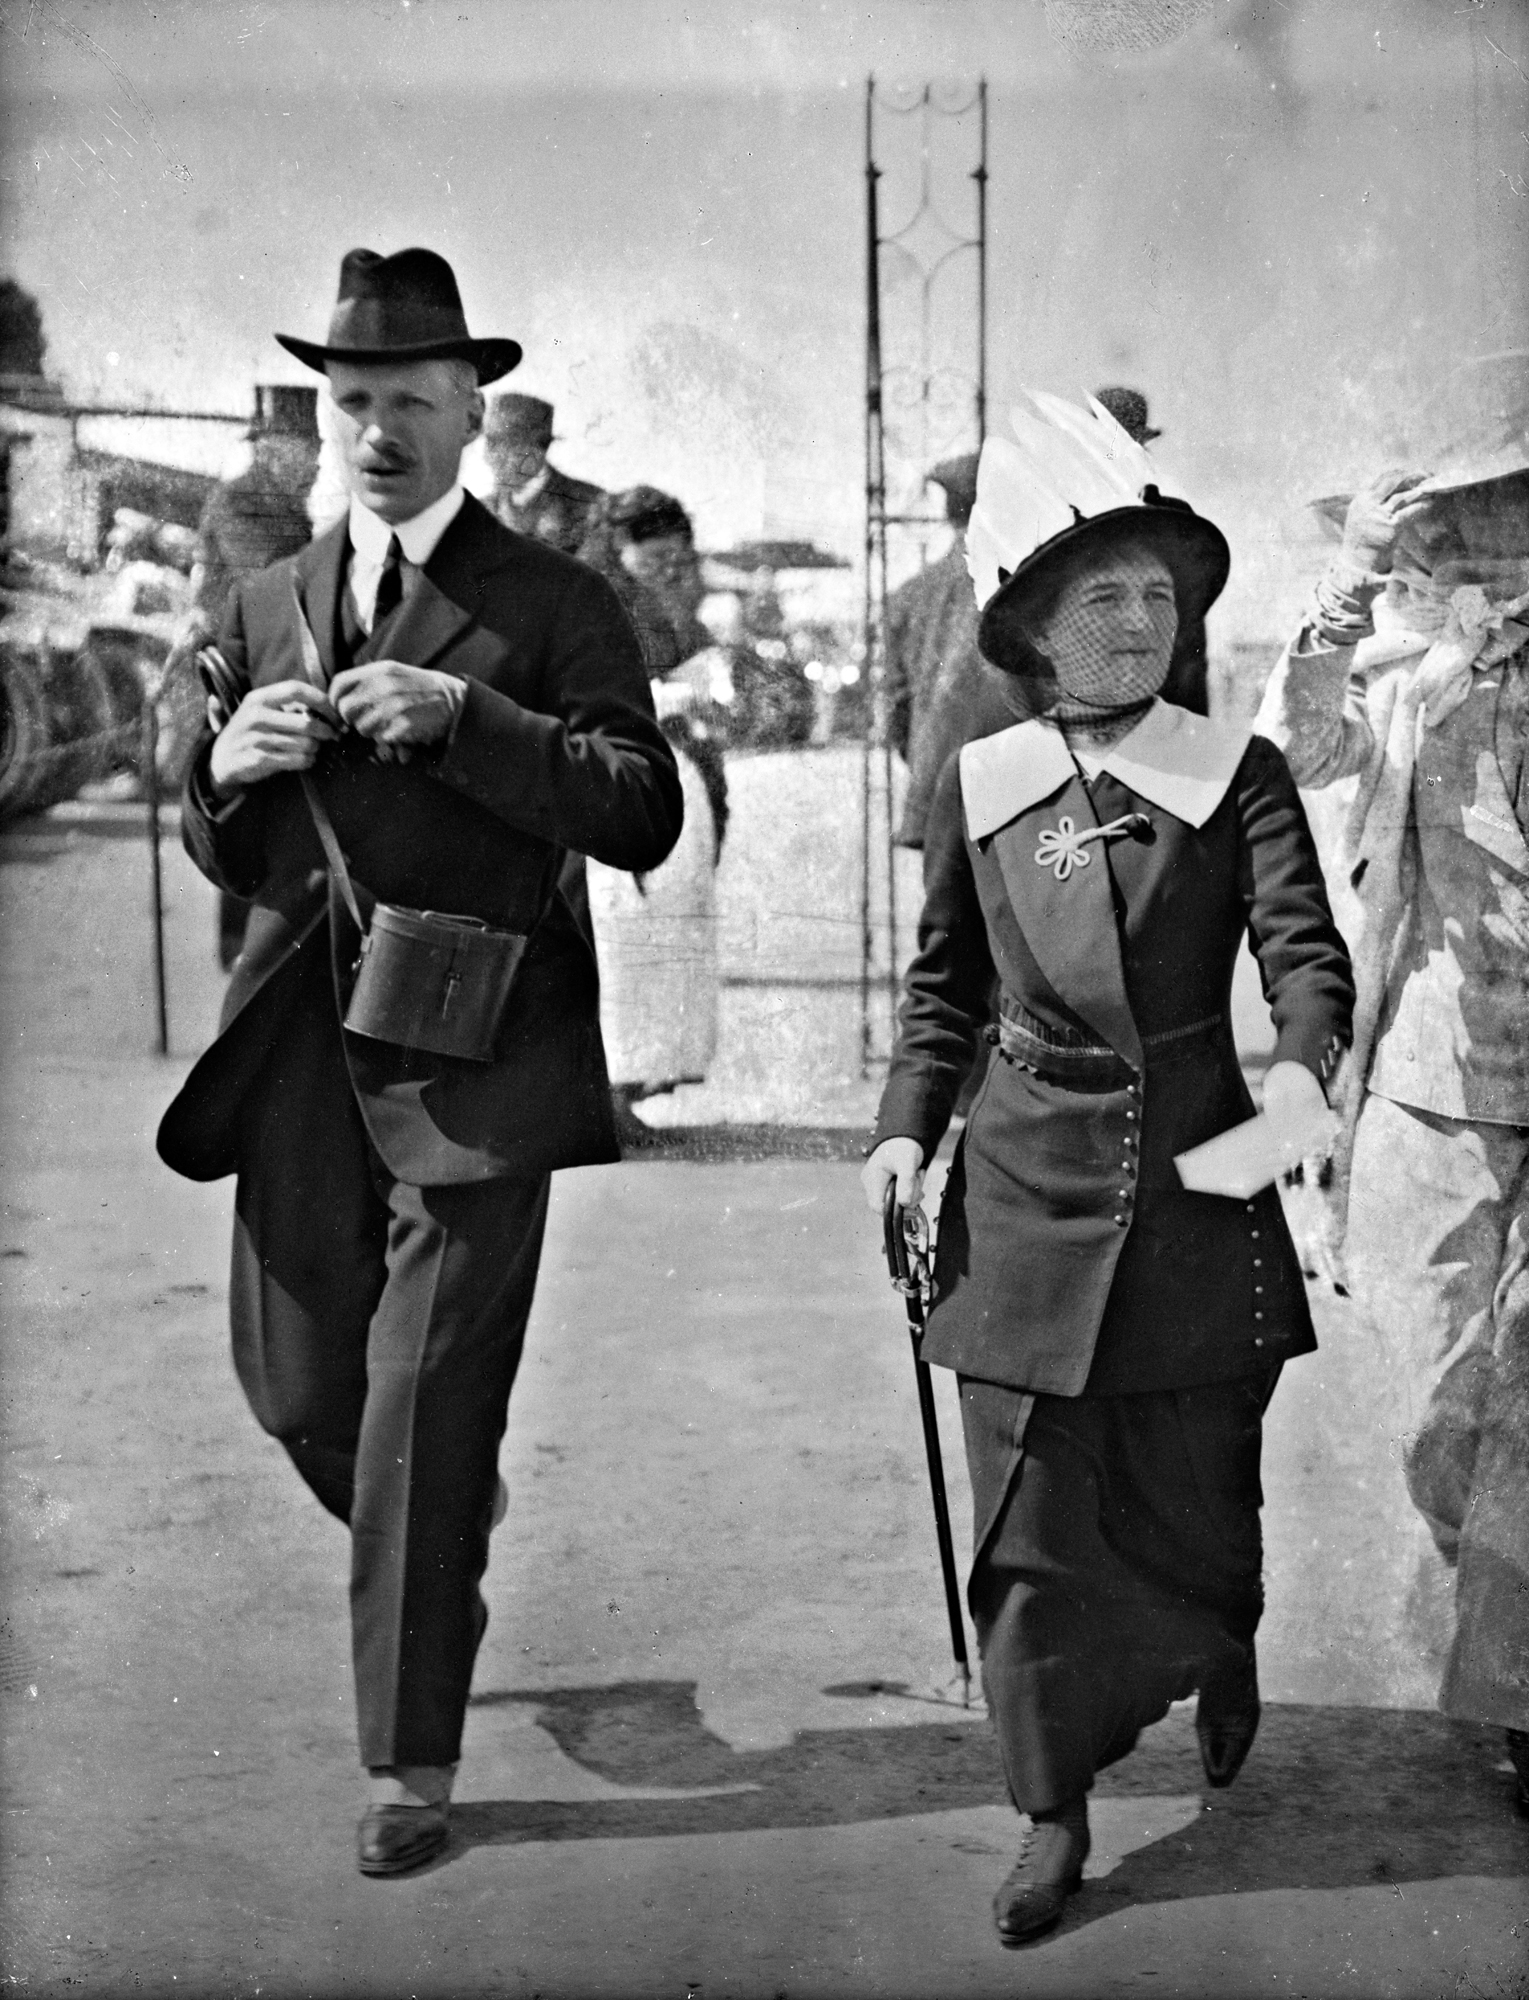 Spit, spot, spats, striding strongly!  Mr. and Mrs. Herbert Goff at the races!